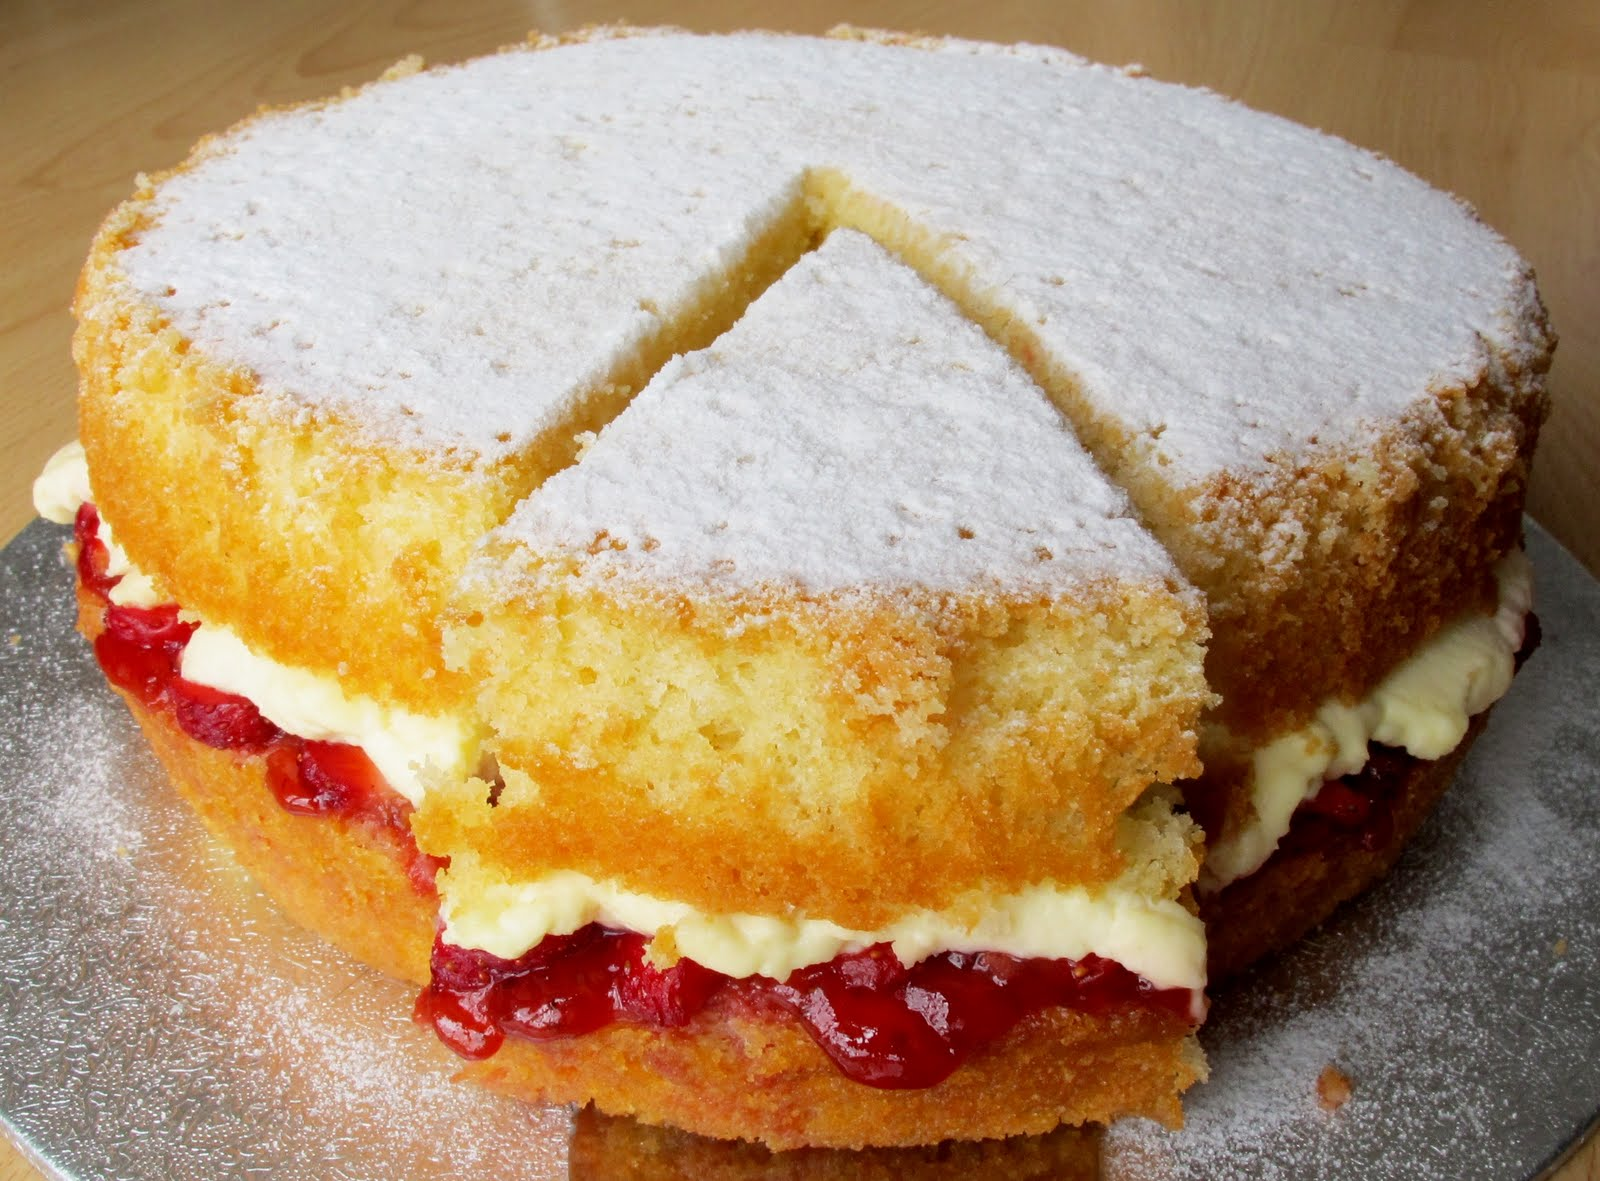 Where Is The Cake Victoria Sponge From